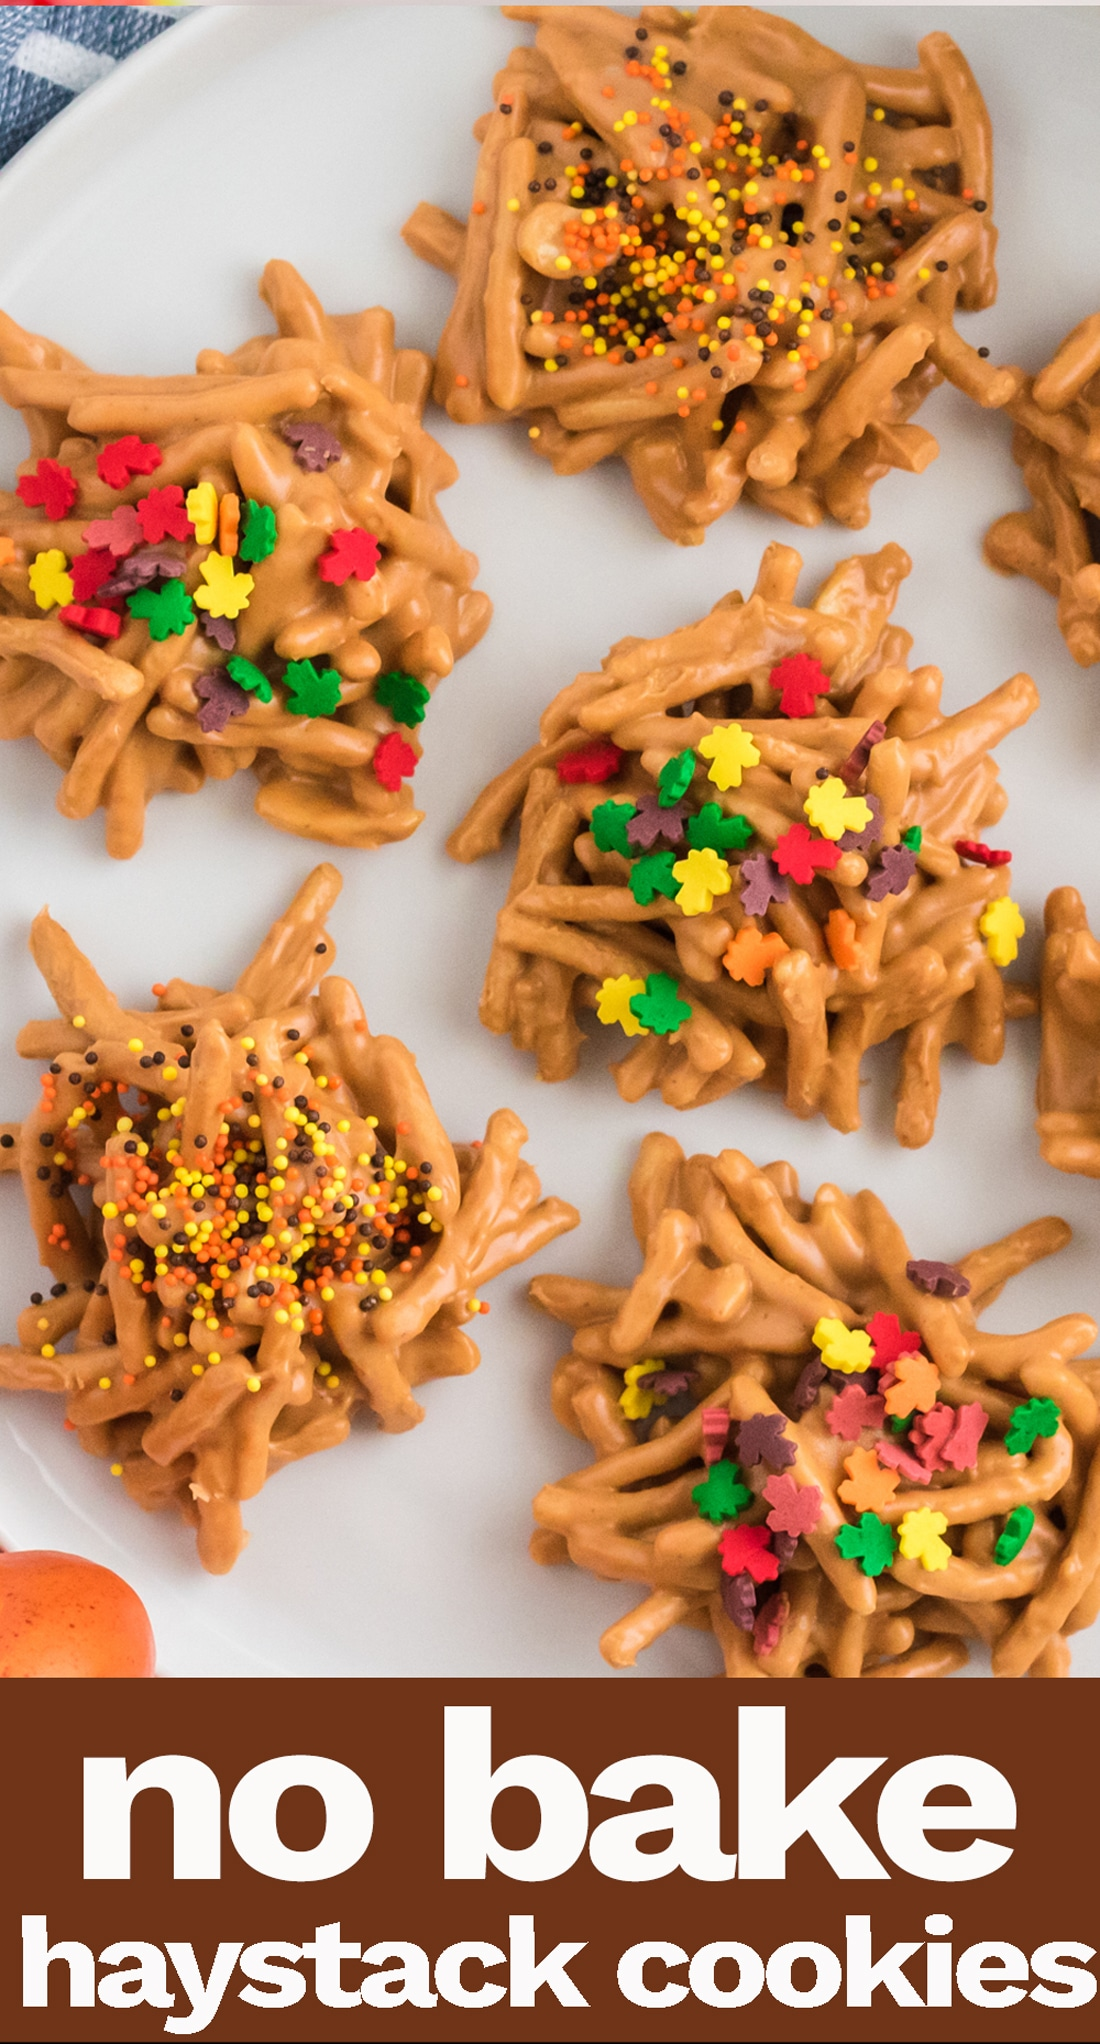 No Bake Haystack Cookies feature peanut butter, butterscotch, chow mein noodles and peanuts. An easy, old fashioned cookie recipe kids can help with. via @tastesoflizzyt